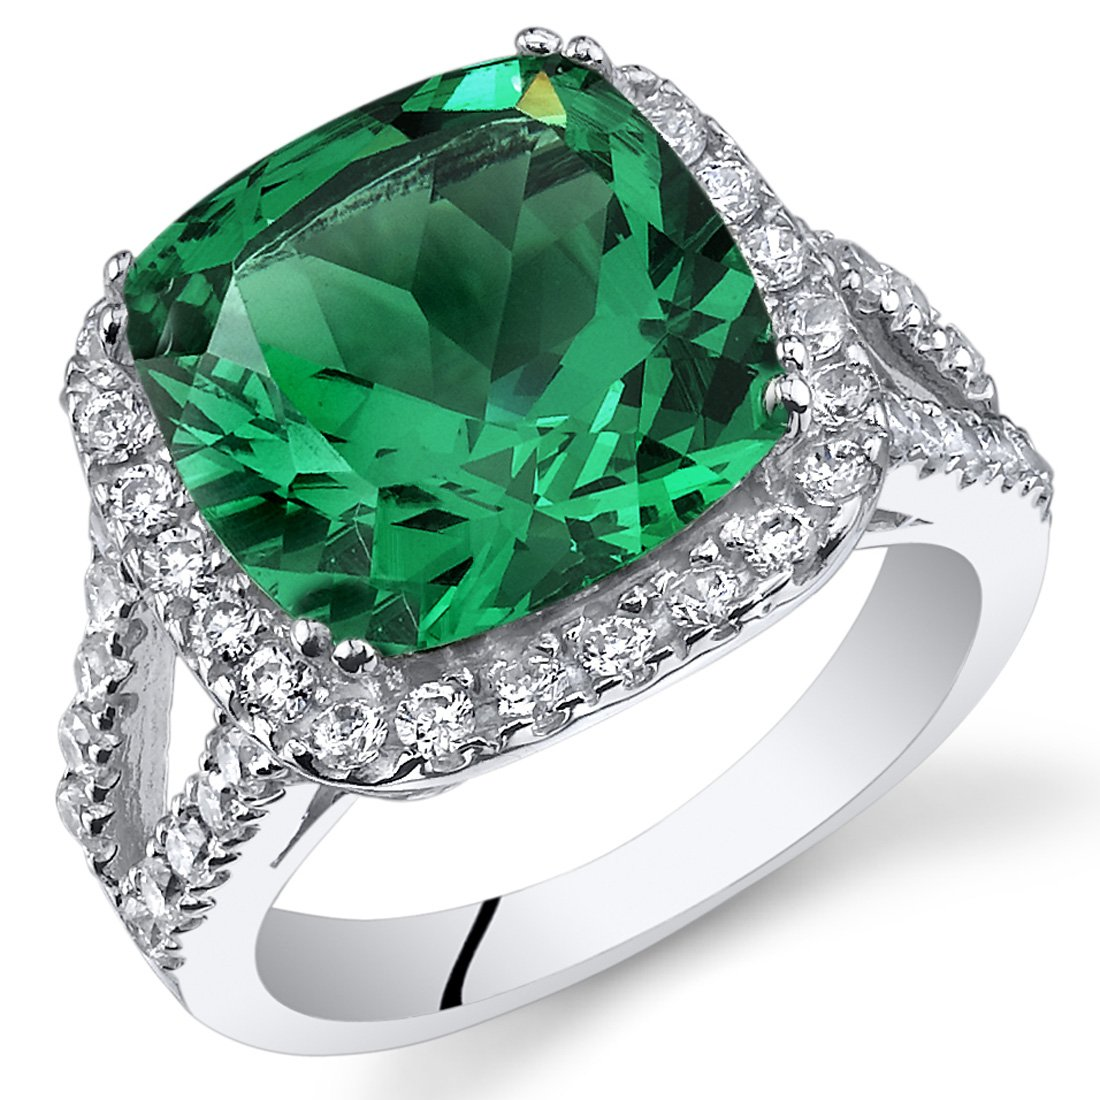 6.50 Carats Cushion Cut Simulated Emerald Ring Sterling Silver Size 7